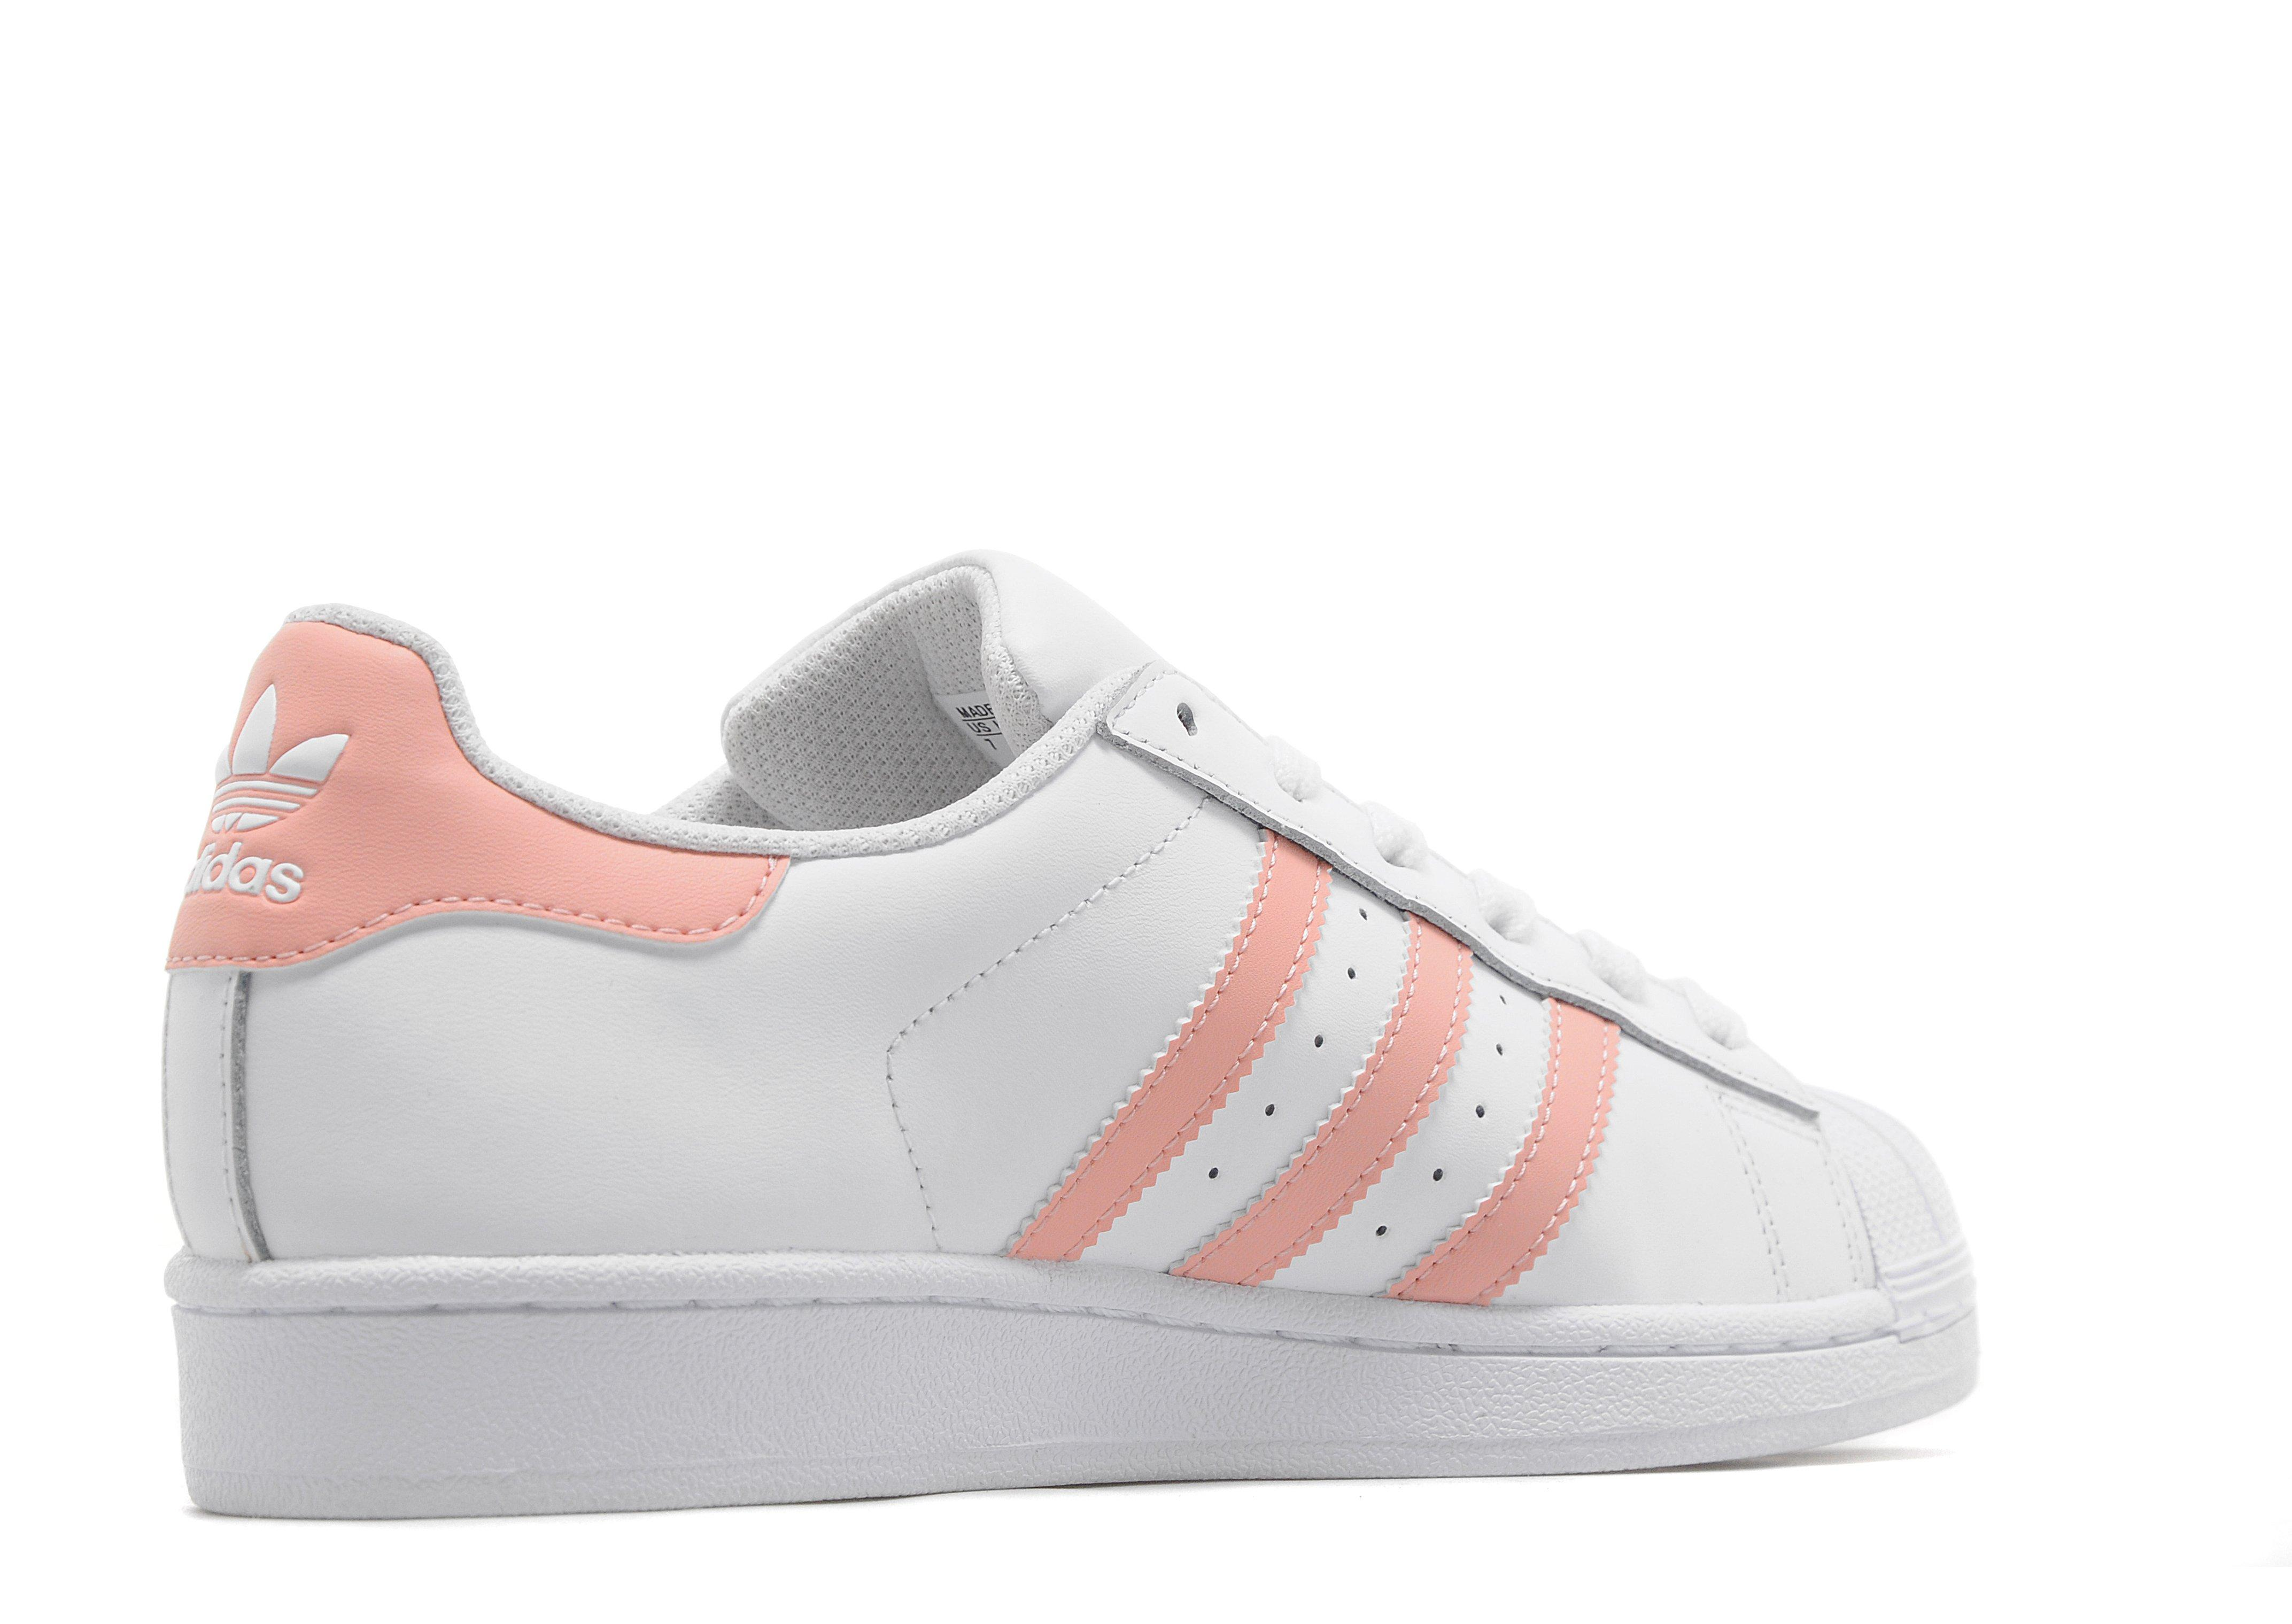 Adidas Superstar Shoes Pink Stripe Adidasoutlettrainers Co Uk